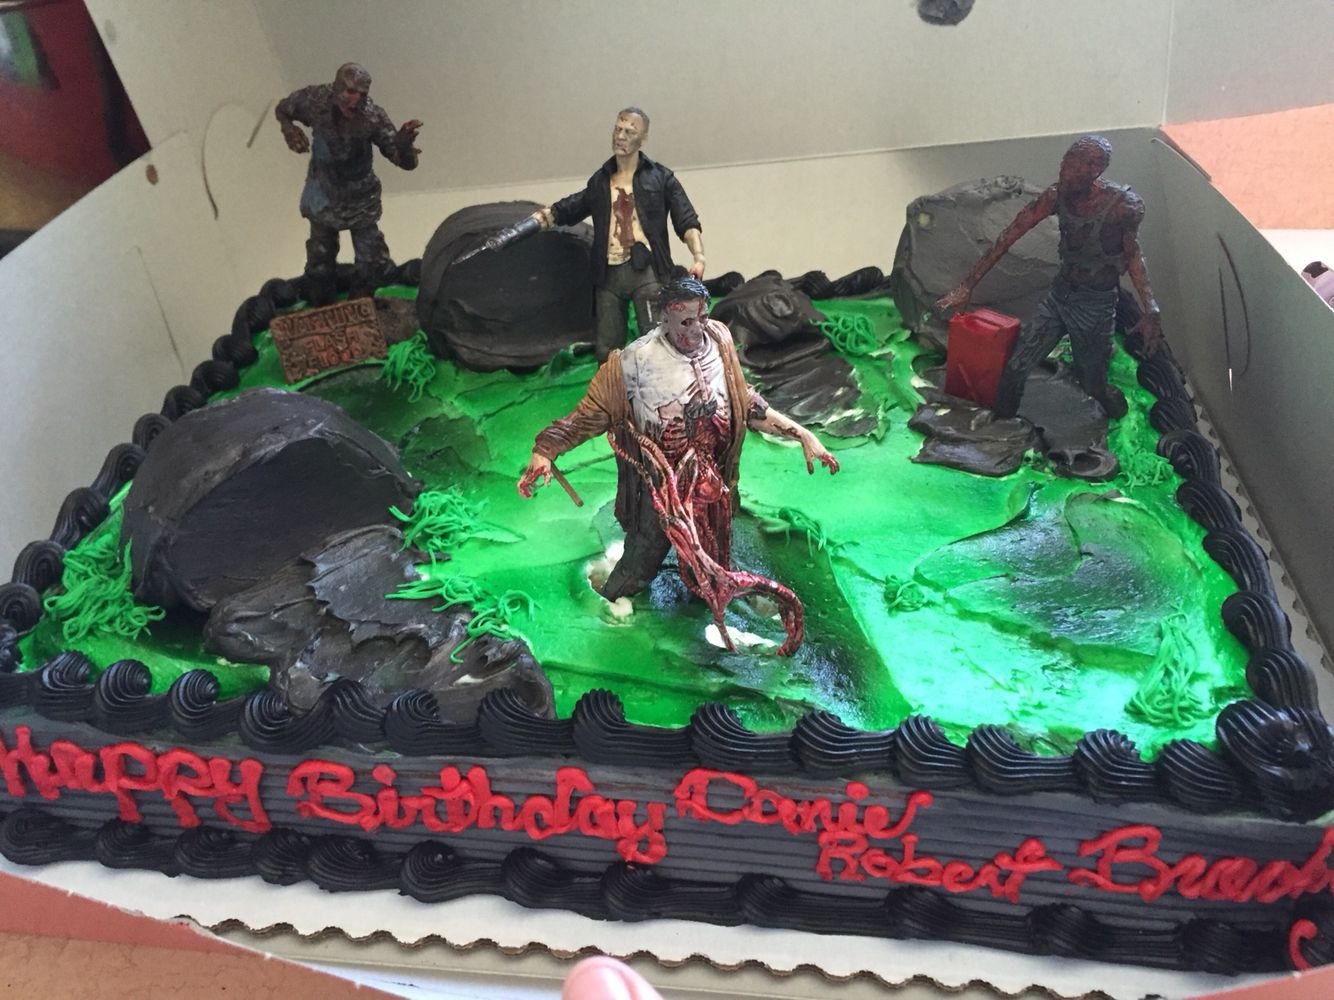 walking dead cake from vons I added the walking dead figures